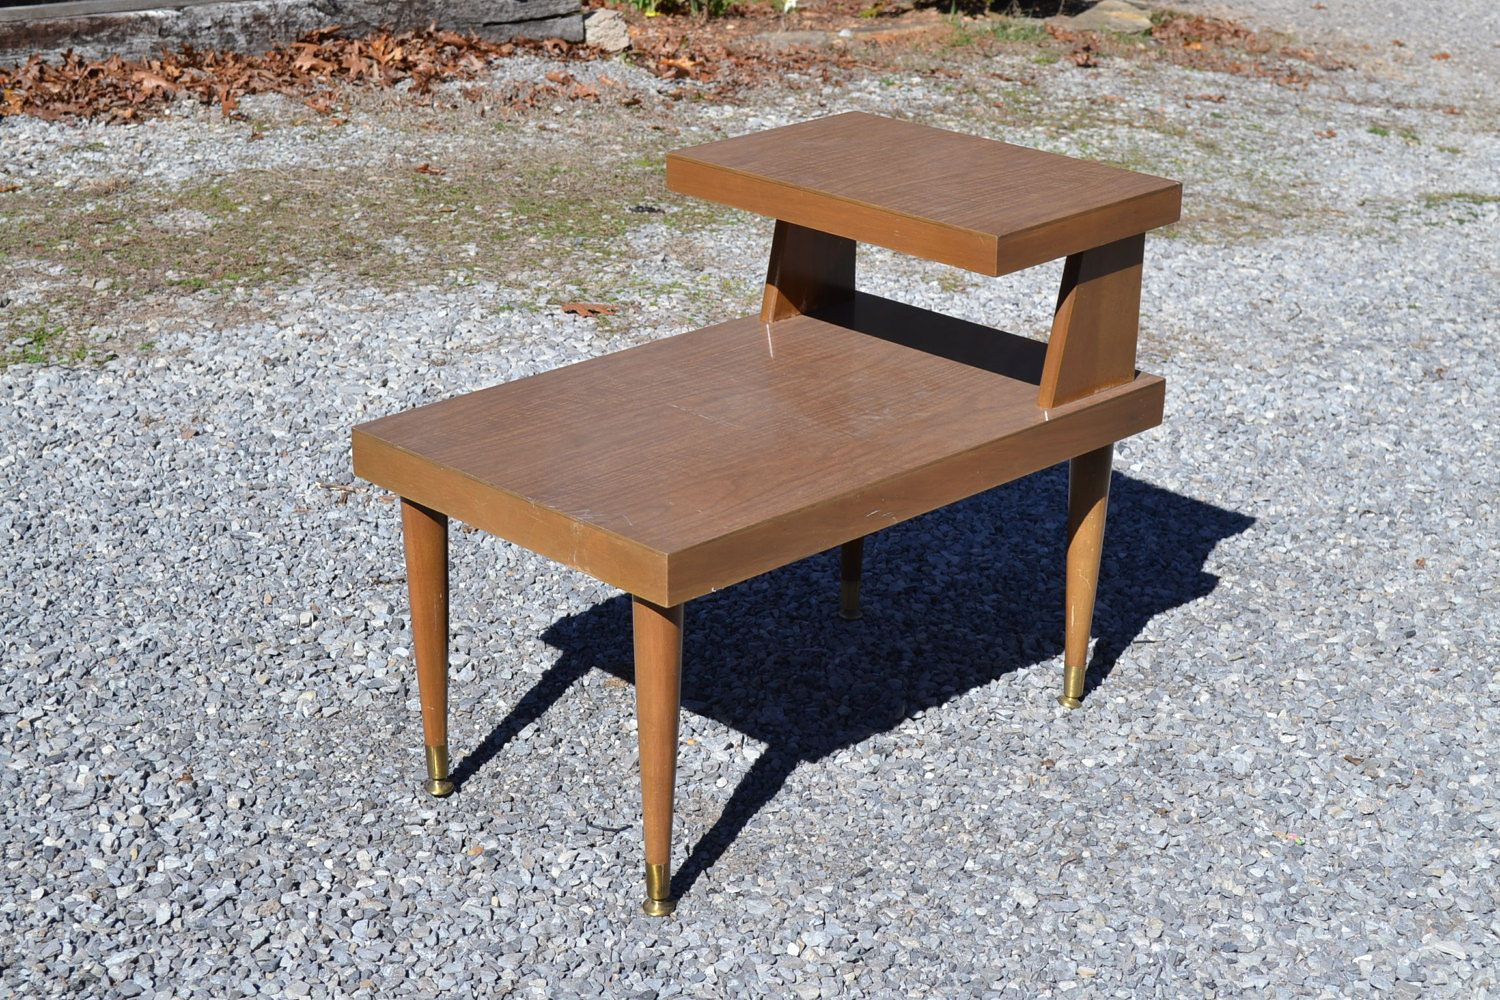 Mid Century End Table Two Tier Mersman Formica Side Table Accent Furniture Mid Century Modern Mcm Panchosporch Recycled Home Decor End Tables Side Table